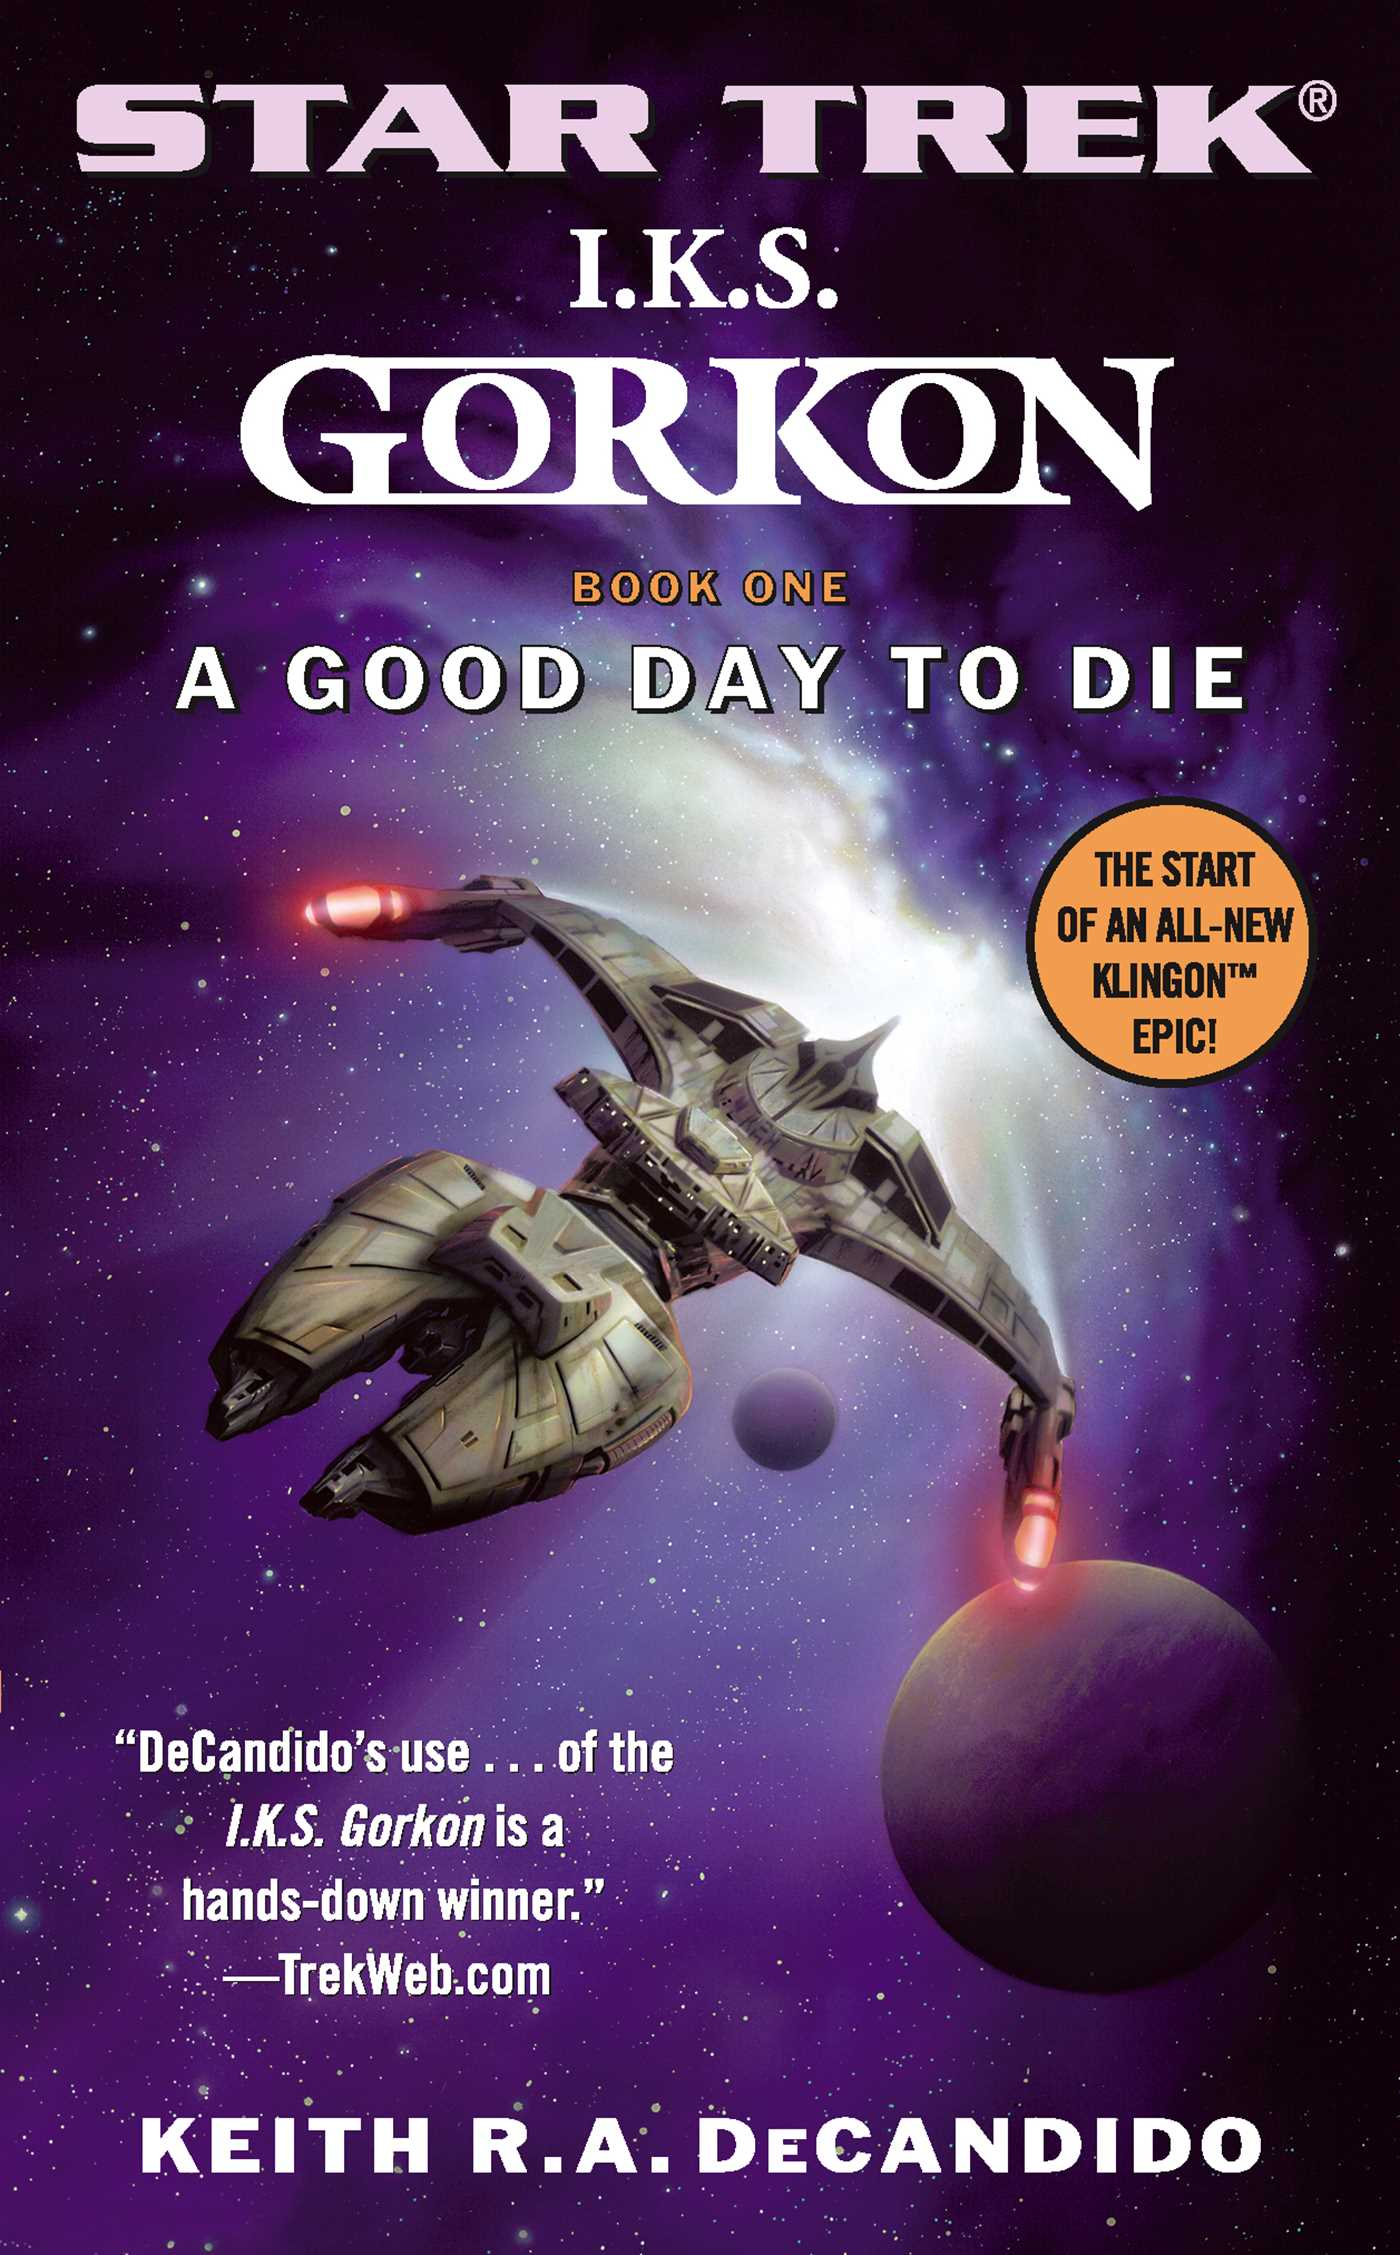 Star-trek-the-next-generation-i-k-s-gorkon-a-good-day-to-die-9780743457156_hr